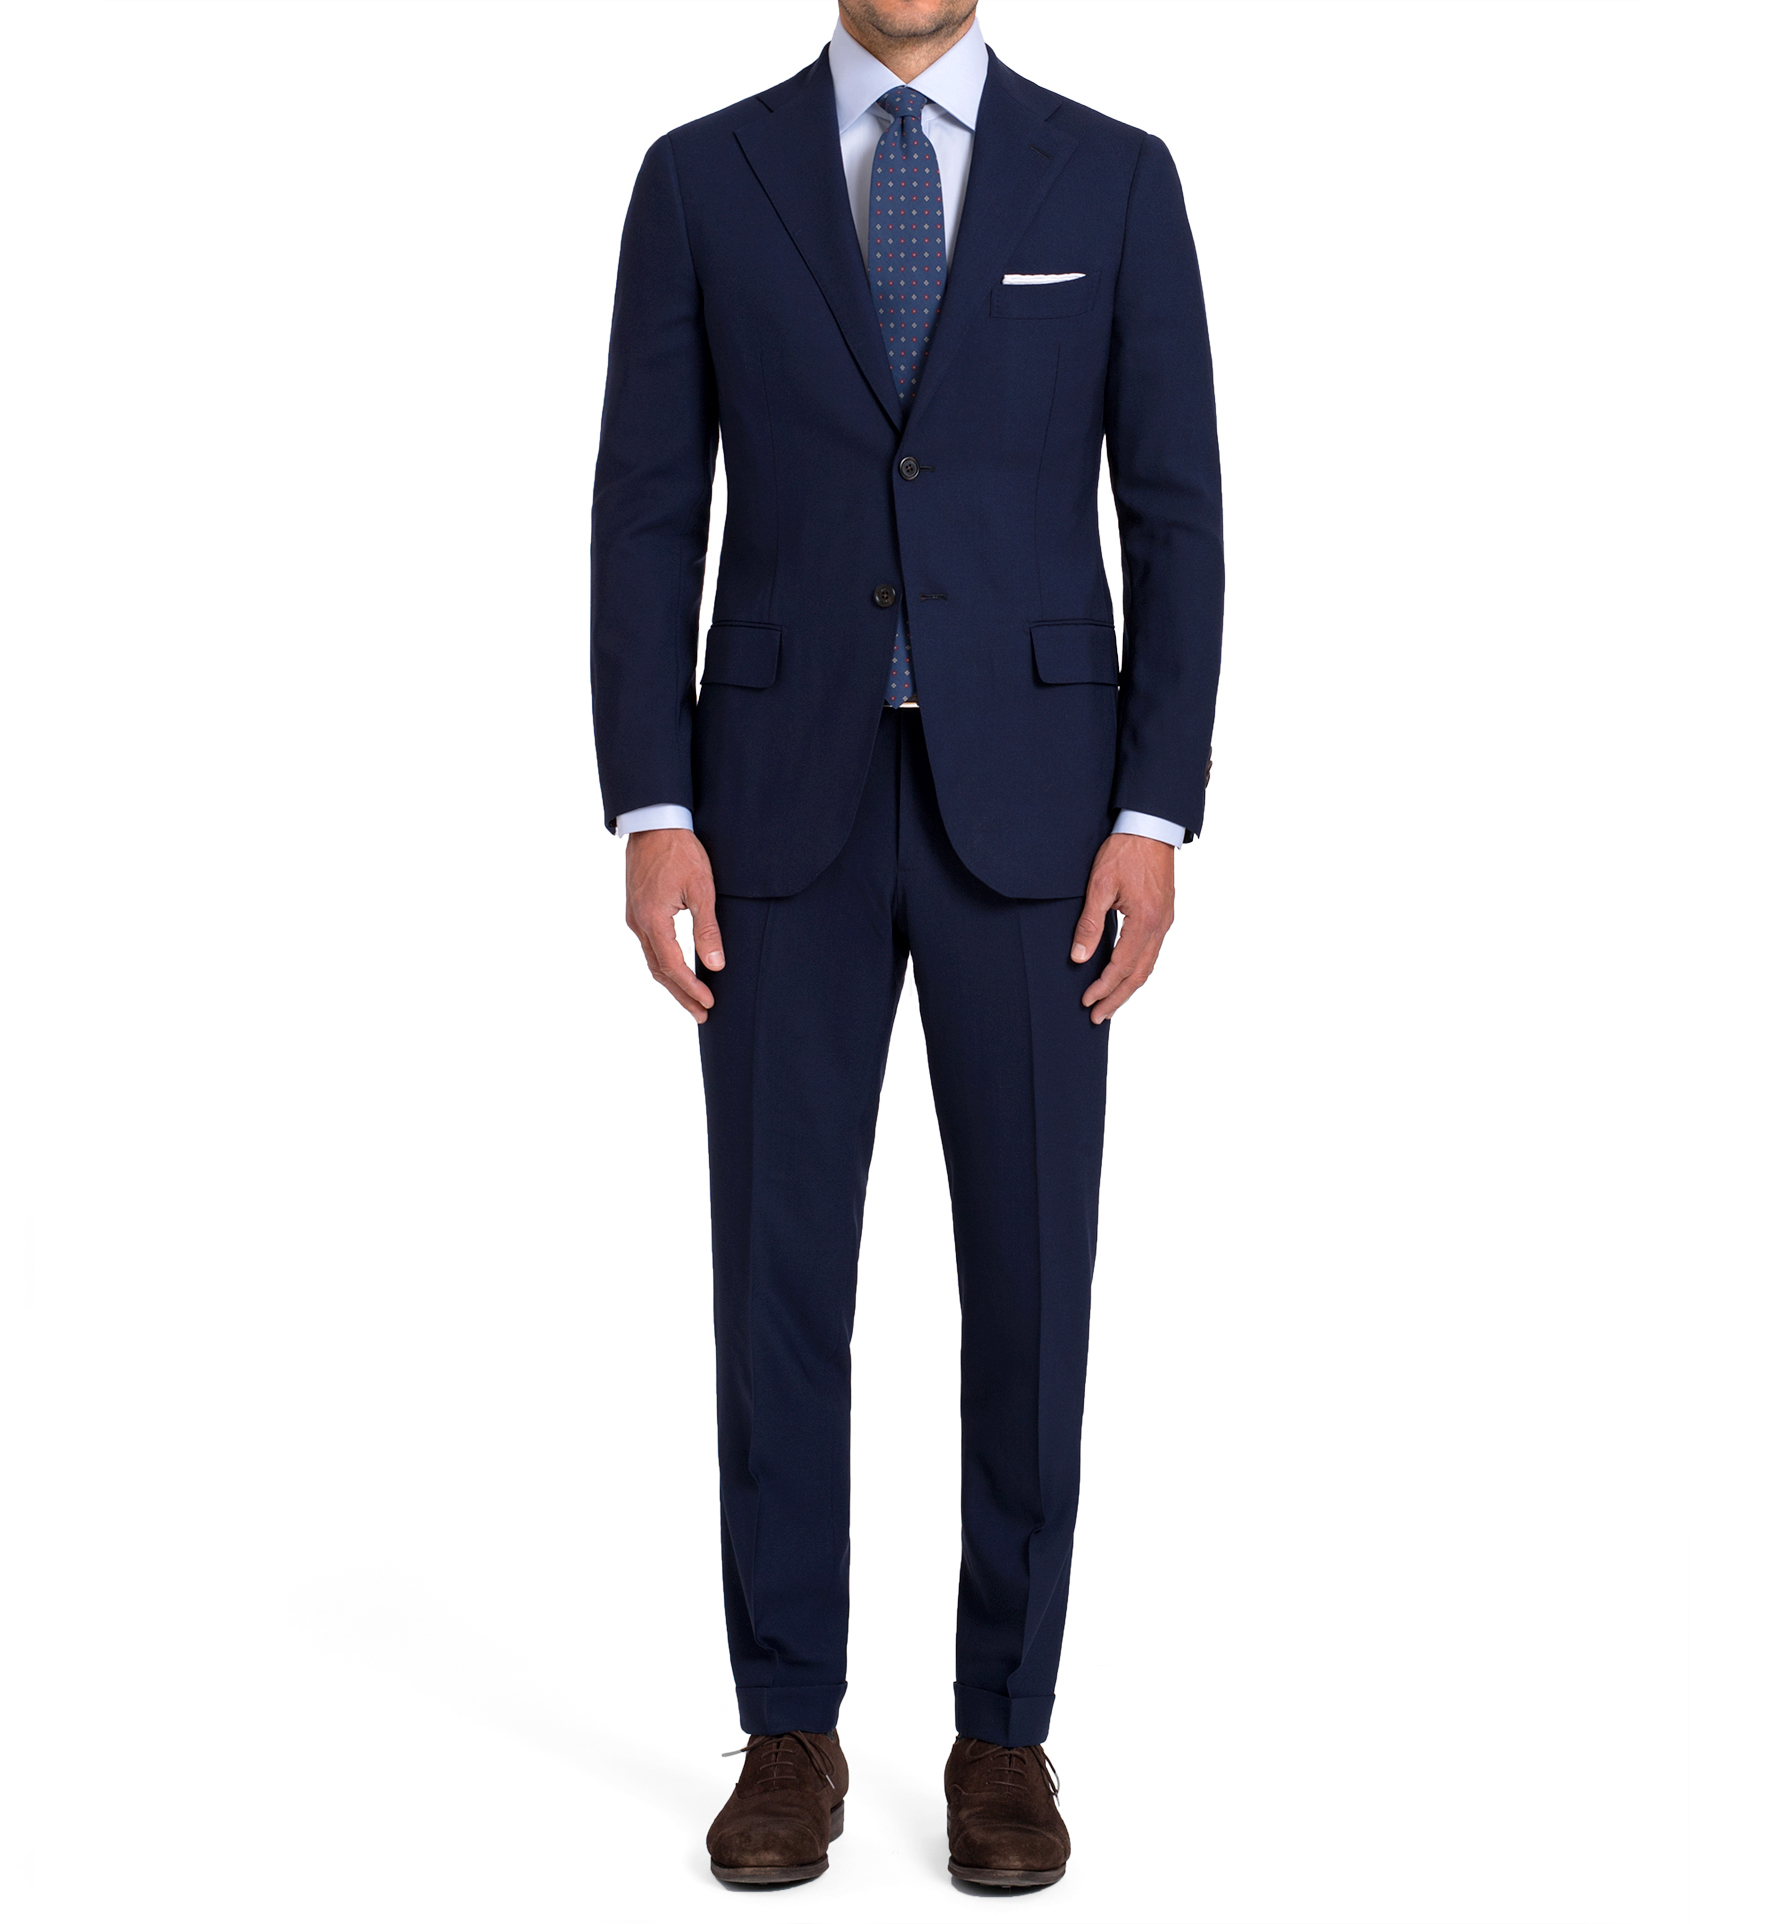 Zoom Image of Allen Navy Fresco Suit with Cuffed Trouser